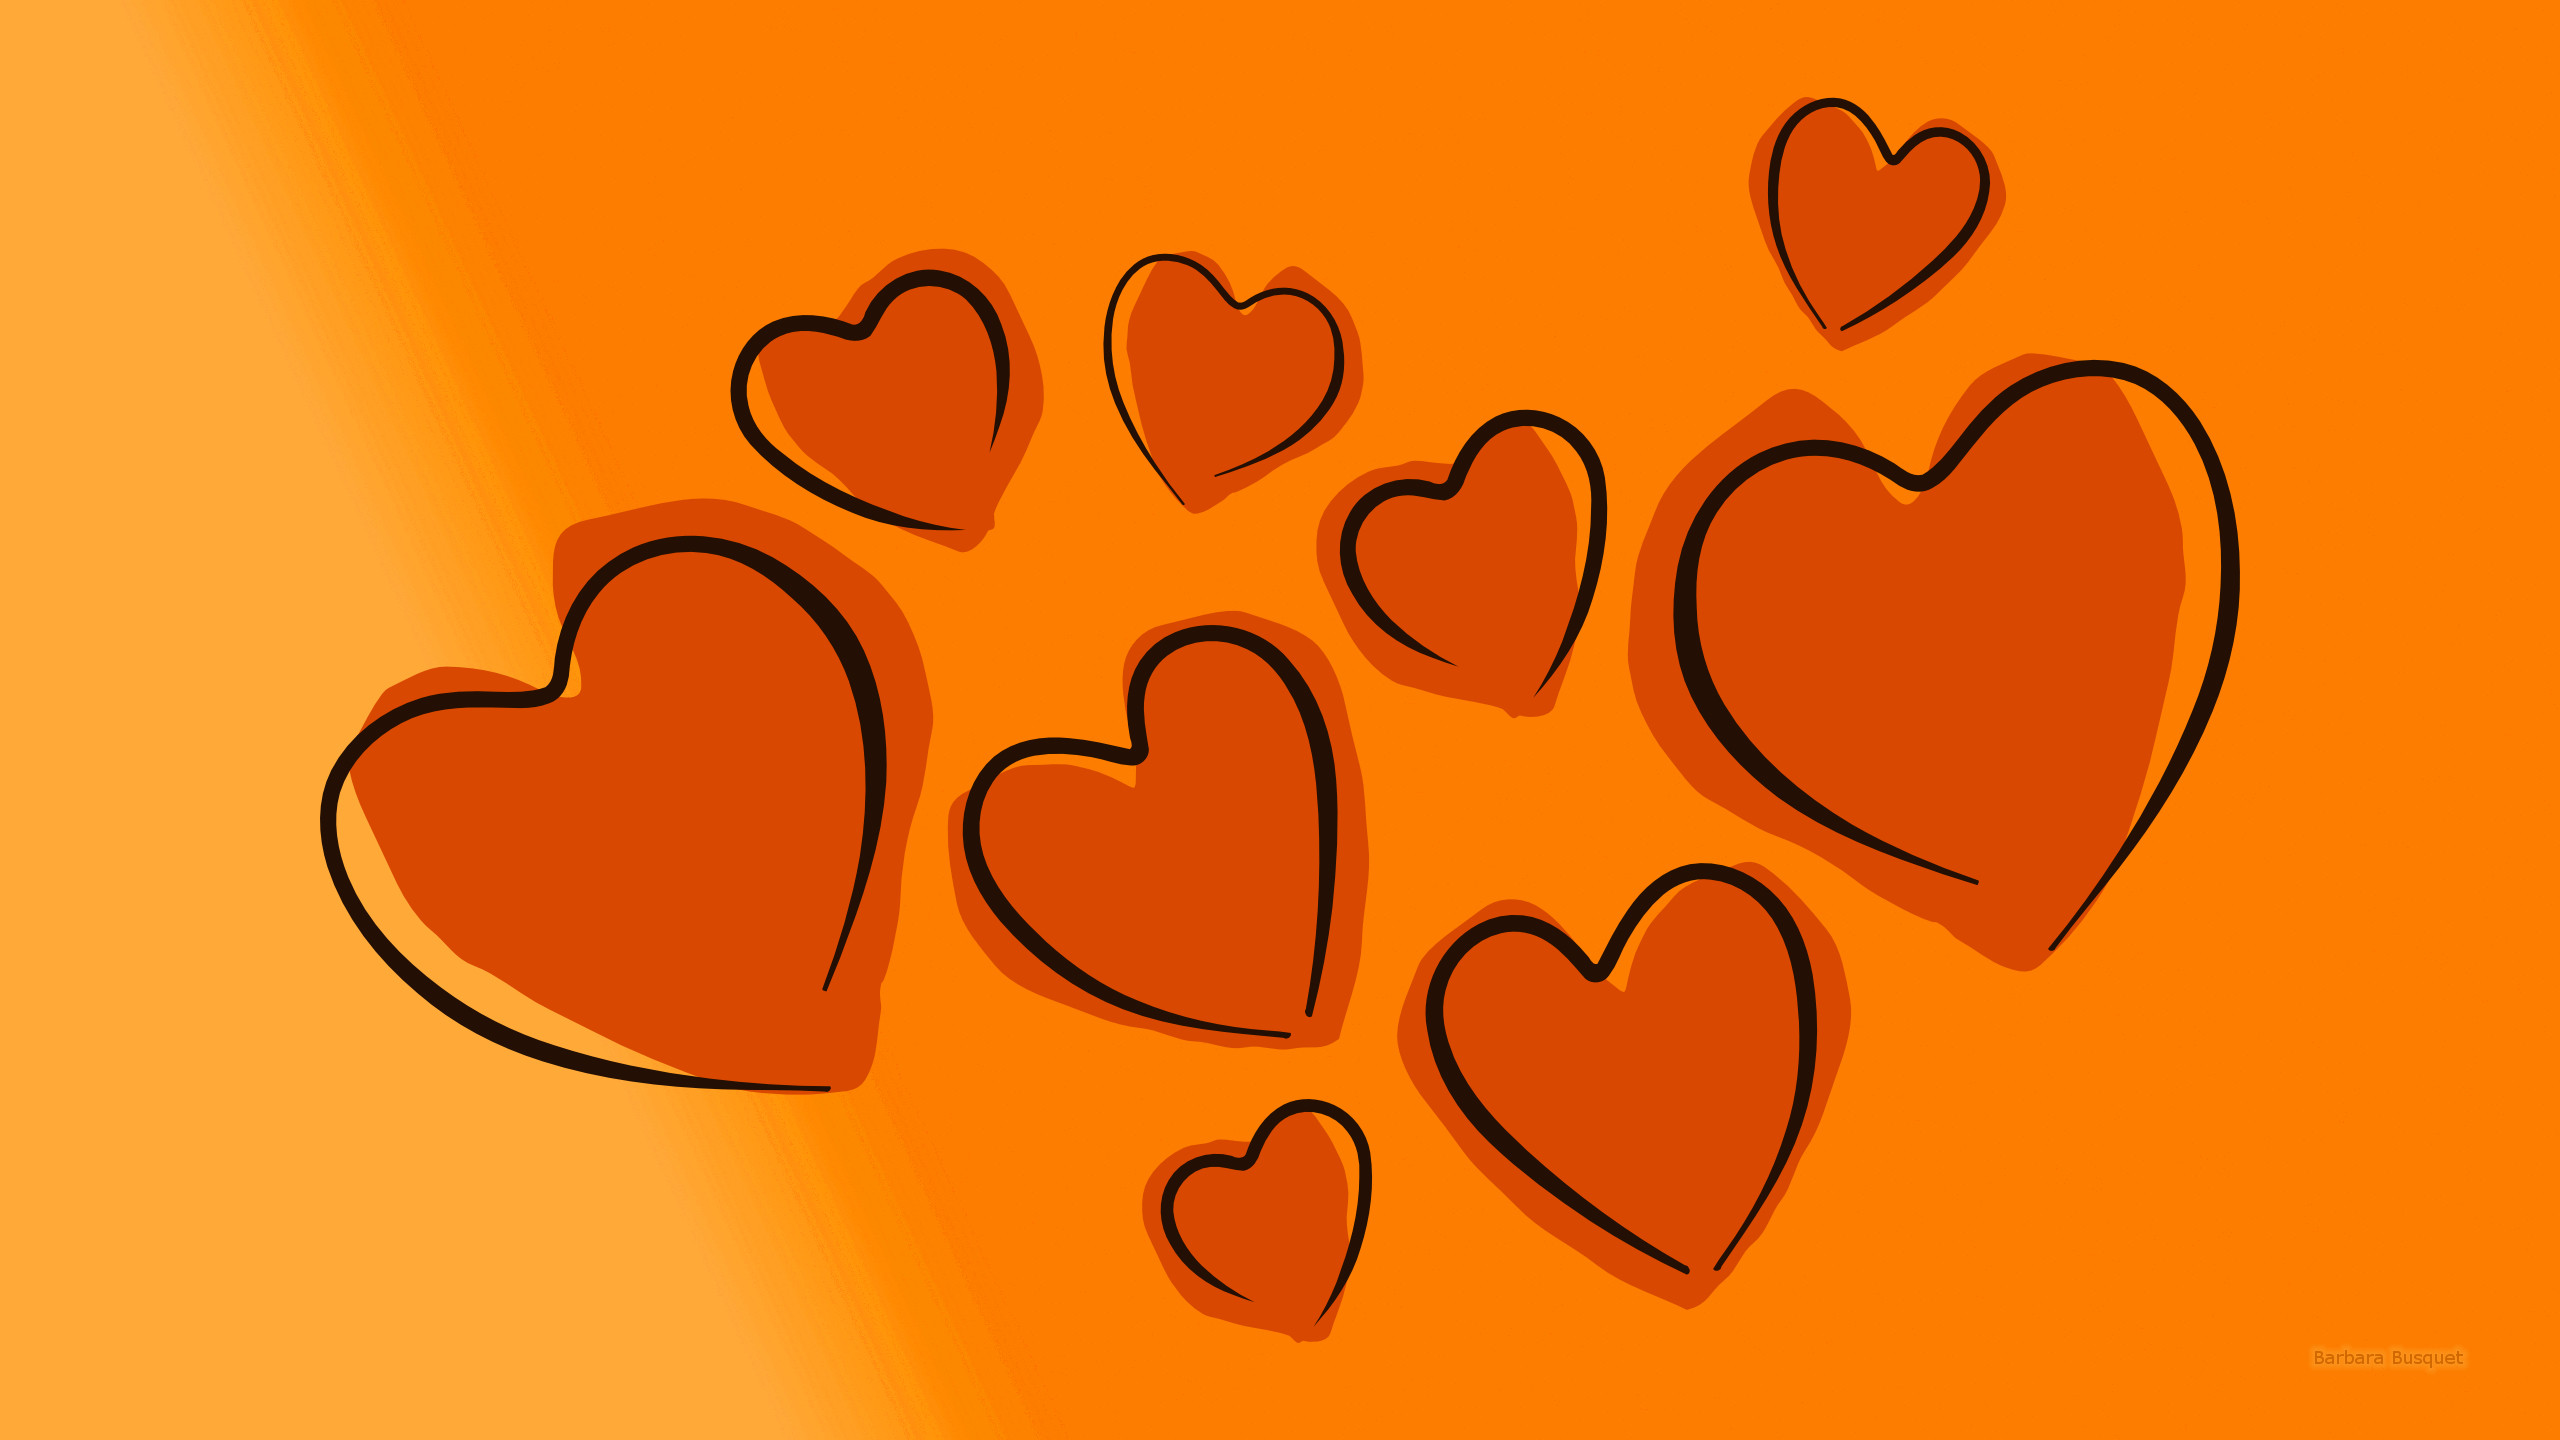 HD wallpaper with hearts orange 1